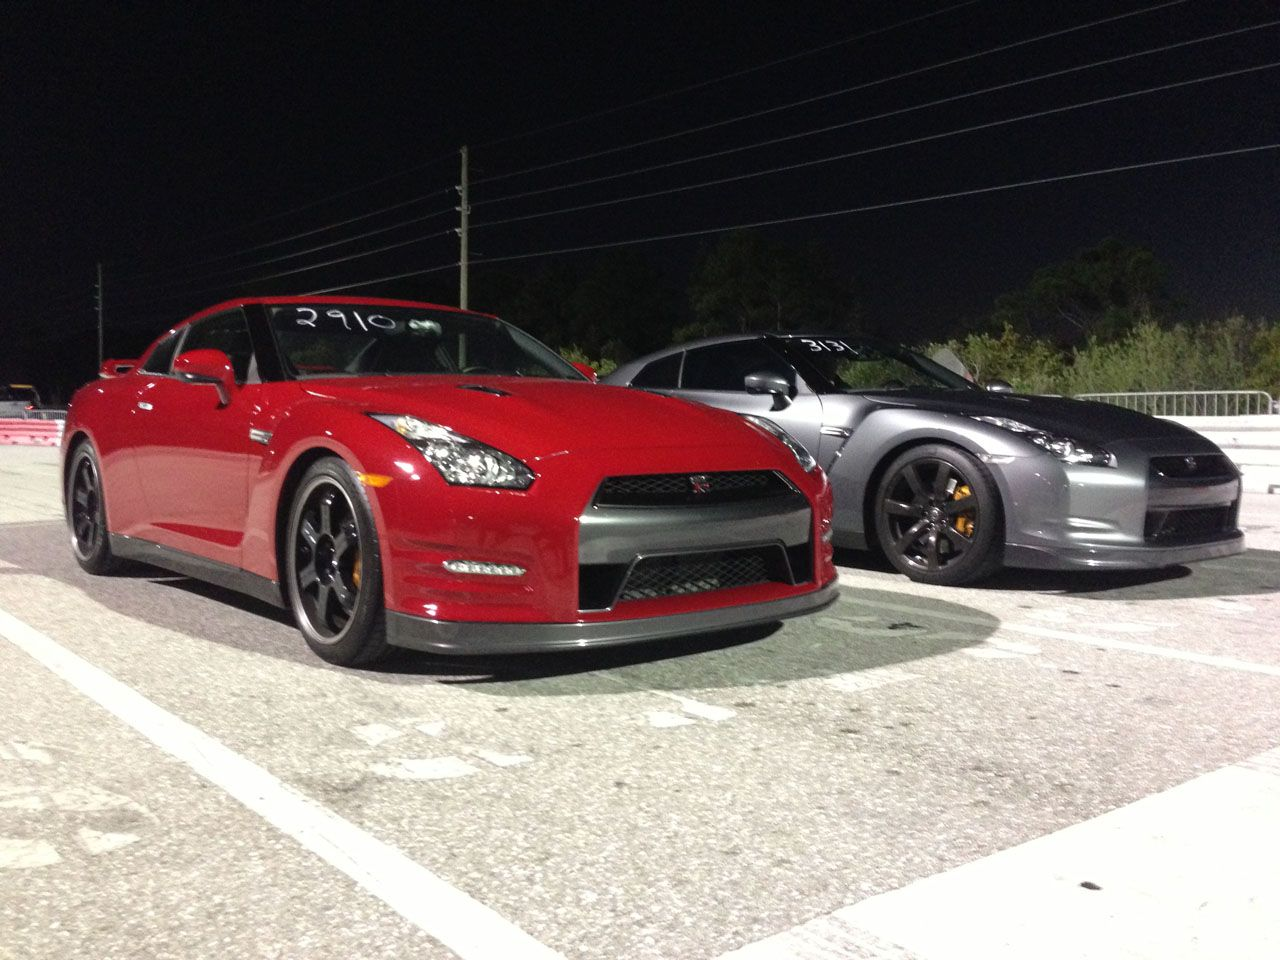 Fast 2013 nissan gt r aam midpipe hplogic tune mile drag racing videos and timeslips